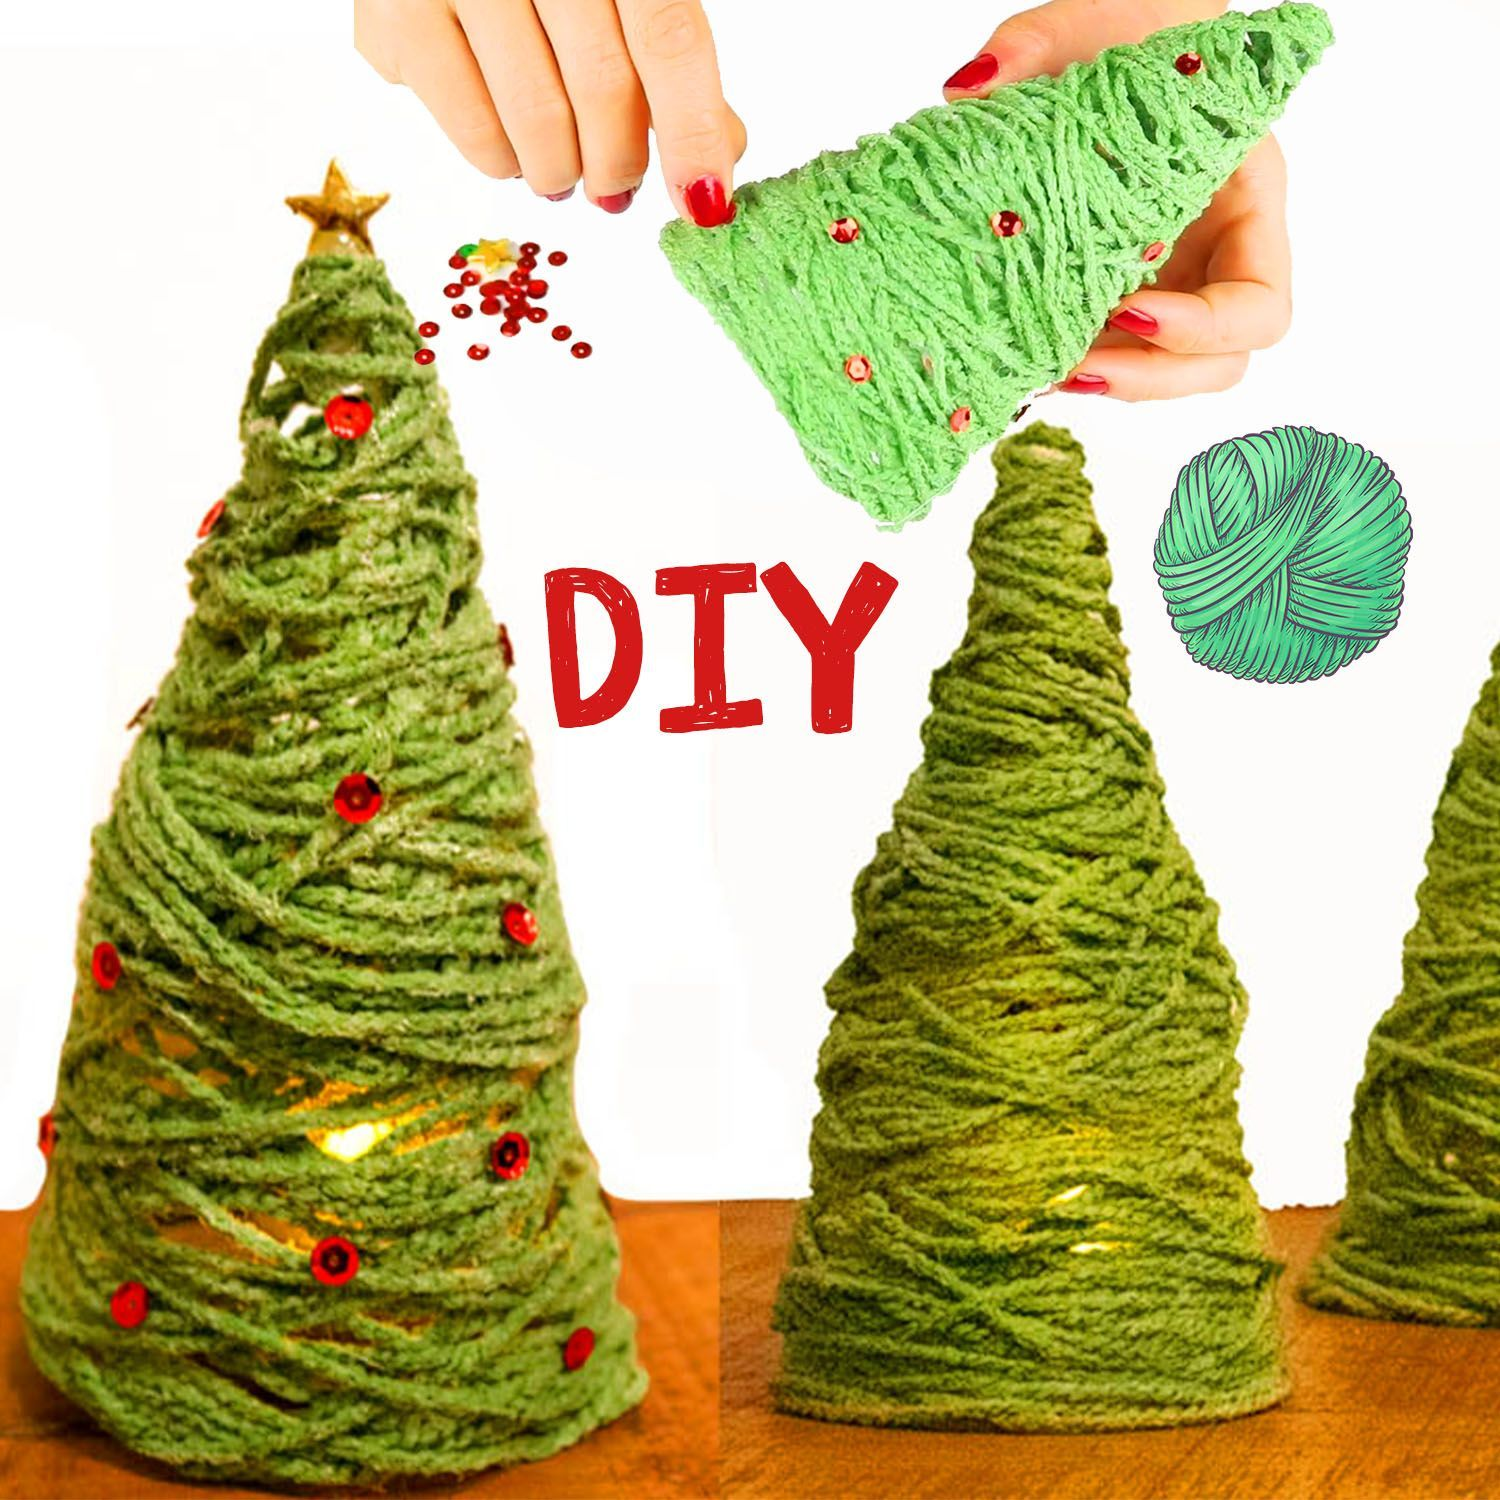 🎄Crafting a Christmas tree out of wool 🎄 DIY for children - simple crafting instructions for Christmas